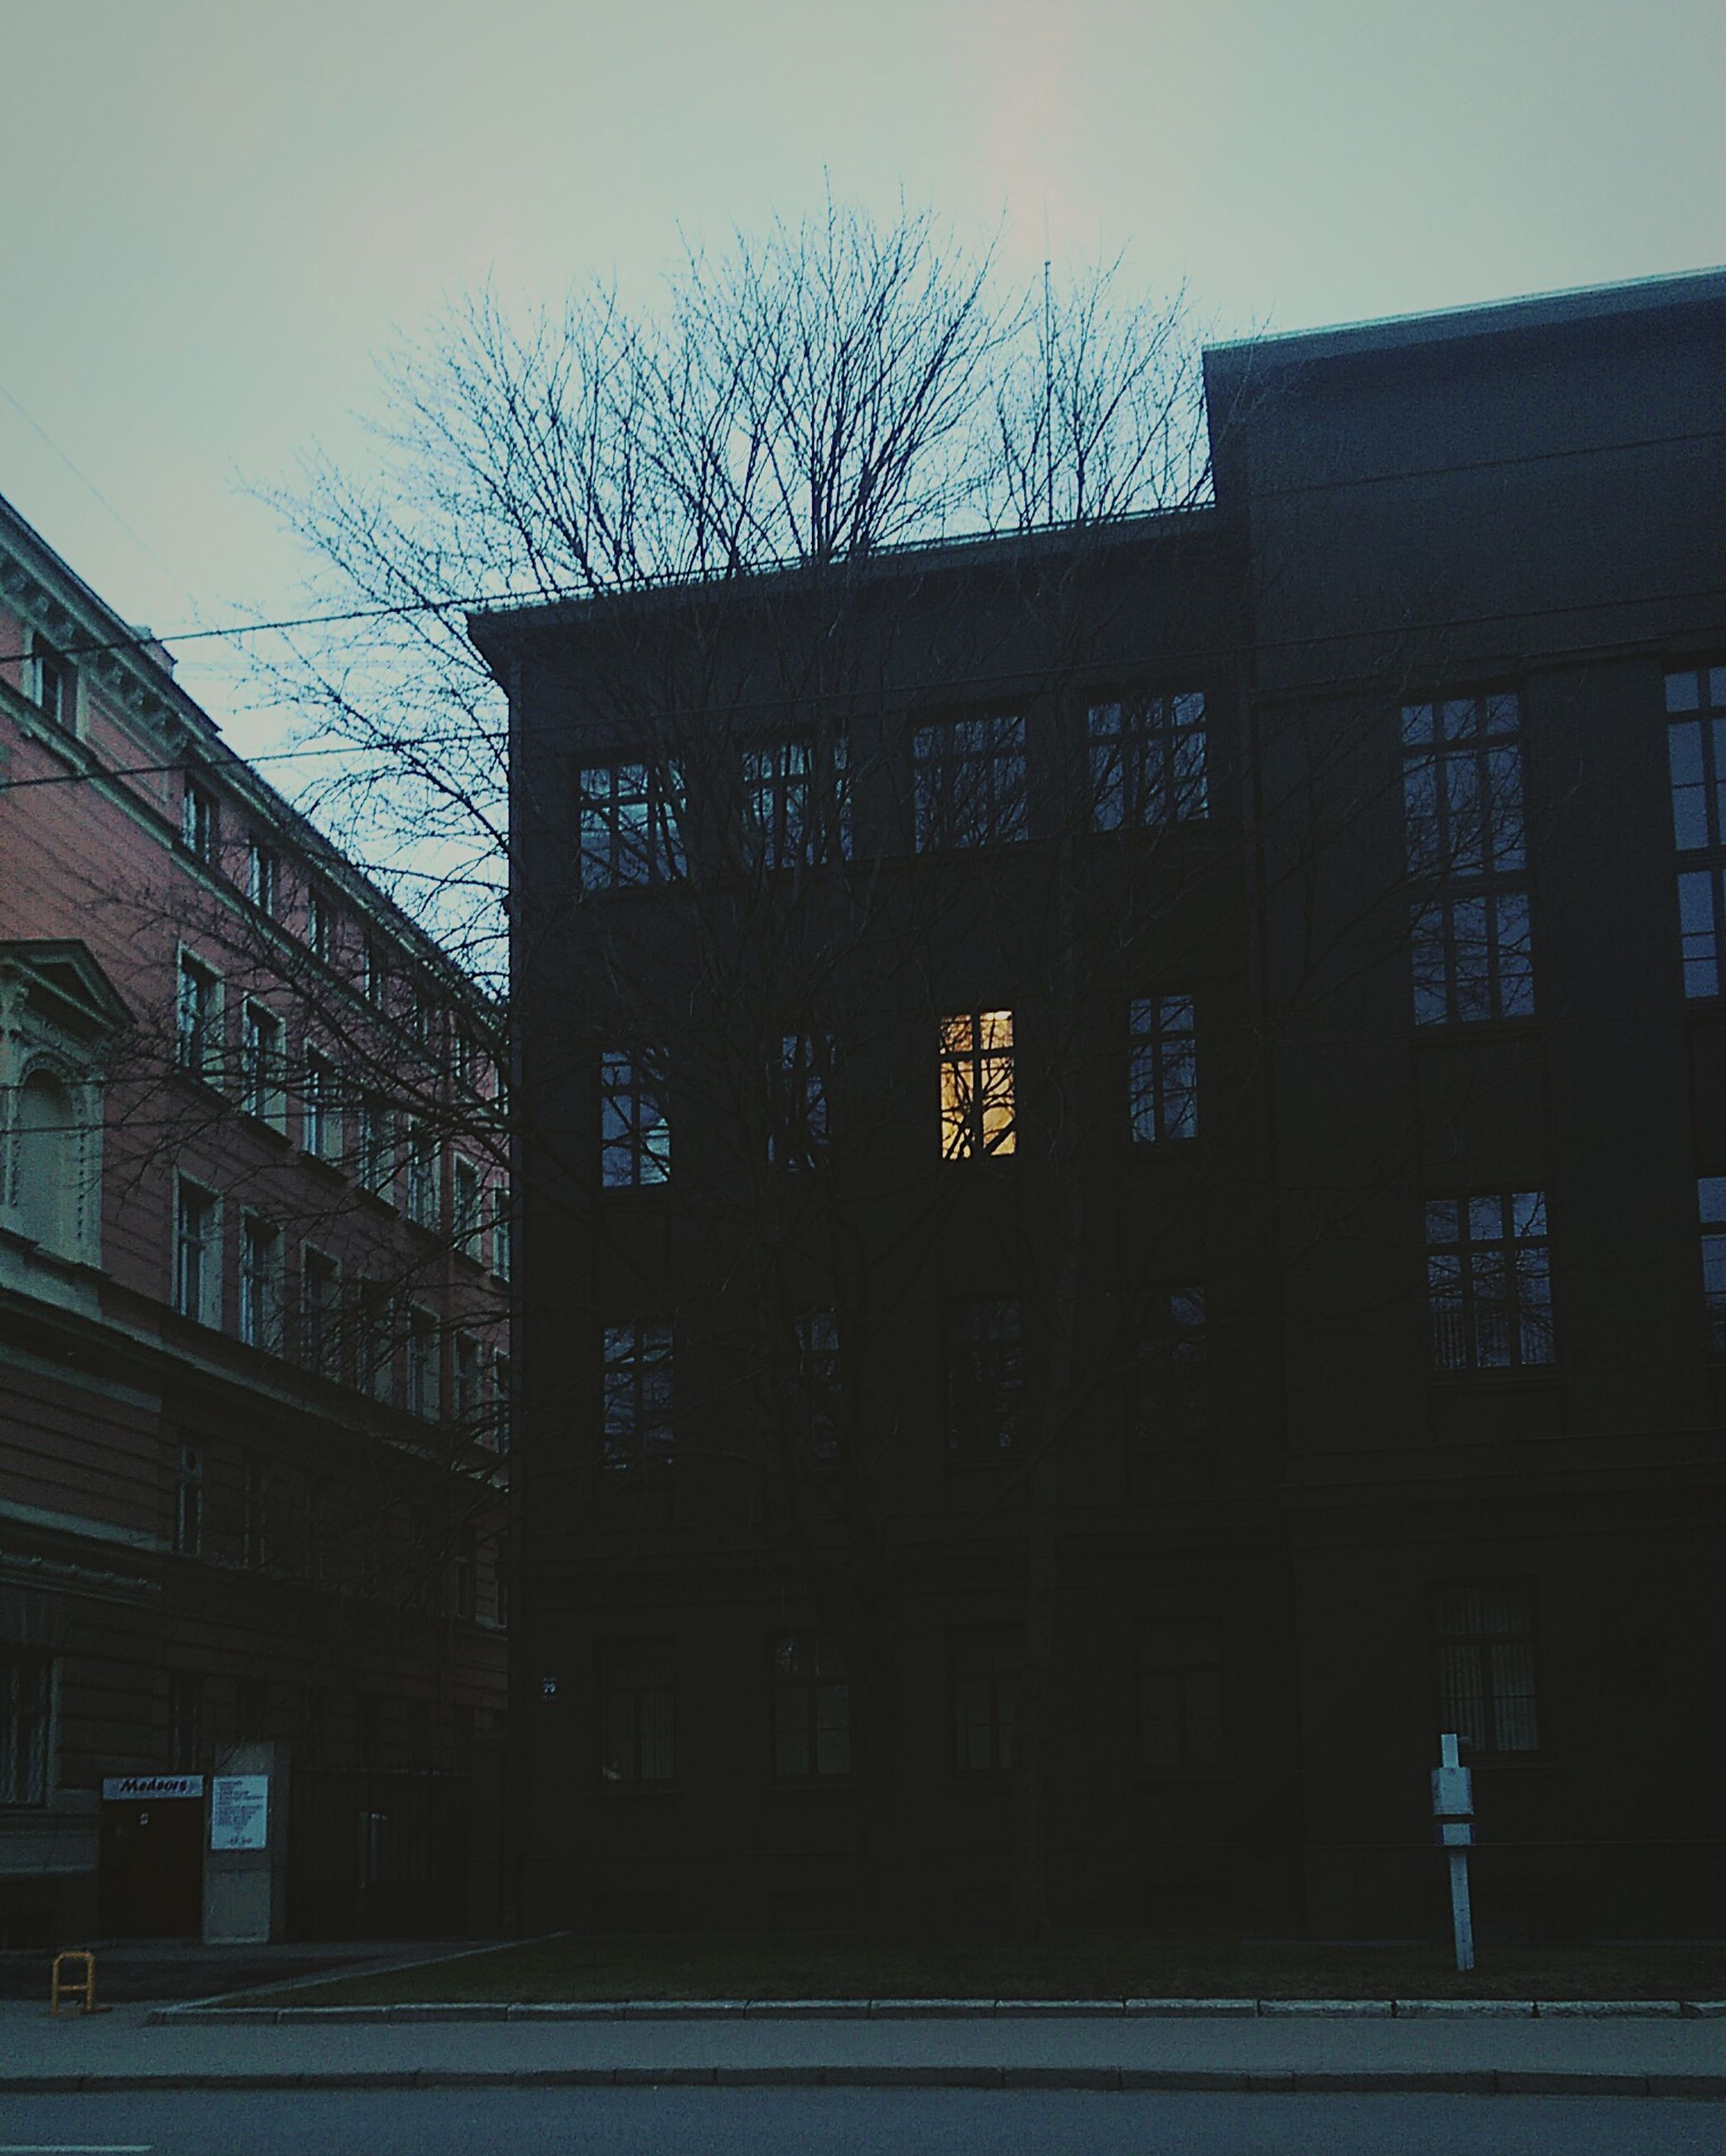 building exterior, architecture, built structure, bare tree, city, building, sky, residential building, residential structure, window, low angle view, street light, house, tree, outdoors, street, no people, clear sky, day, dusk